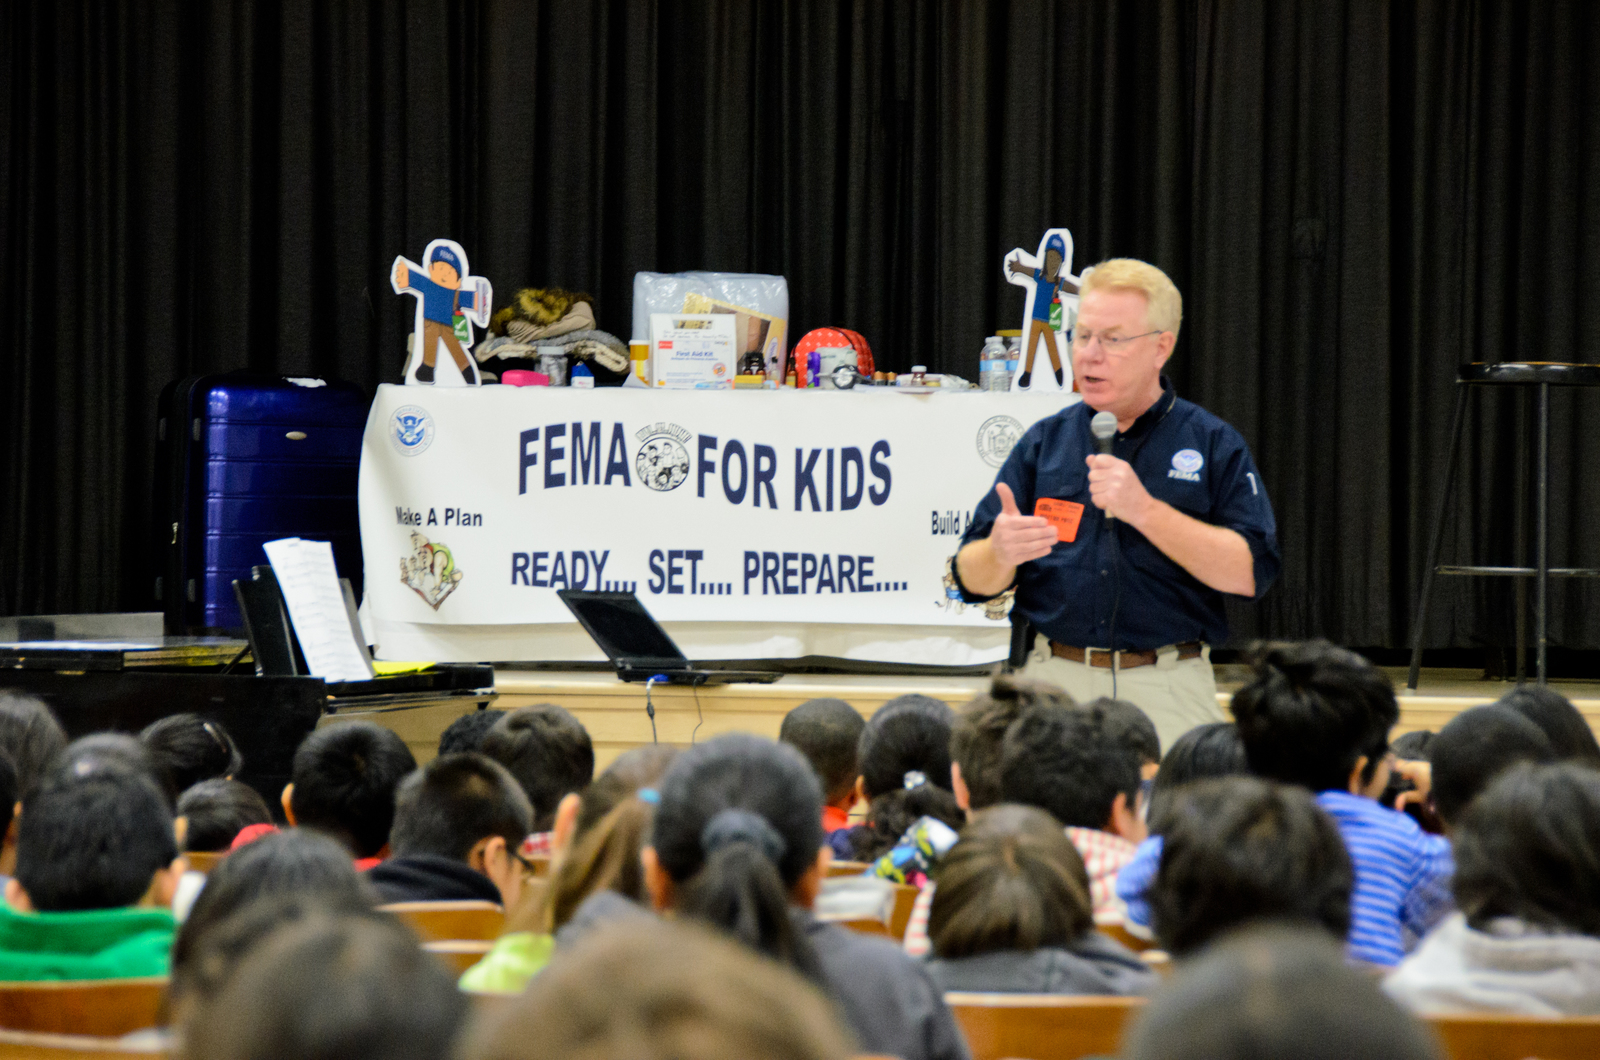 Flushing, N.Y., Feb. 1, 2013 -- FEMA Federal Coordinating Officer (FCO) Michael Byrne, gives an Emergency Management presentation to students and faculty at The Louis Armstrong Middle School - IS 227Q in Flushing, New York. Mr. Bryne shows a FEMA emergency response video and conducts a question and answer session, covering topics from the Hurricane Sandy response by FEMA, to what it was like working as a New York City Firefighter (FDNY) and growing up in New York with a family dedicated to public service. Andre R. Aragon/FEMA